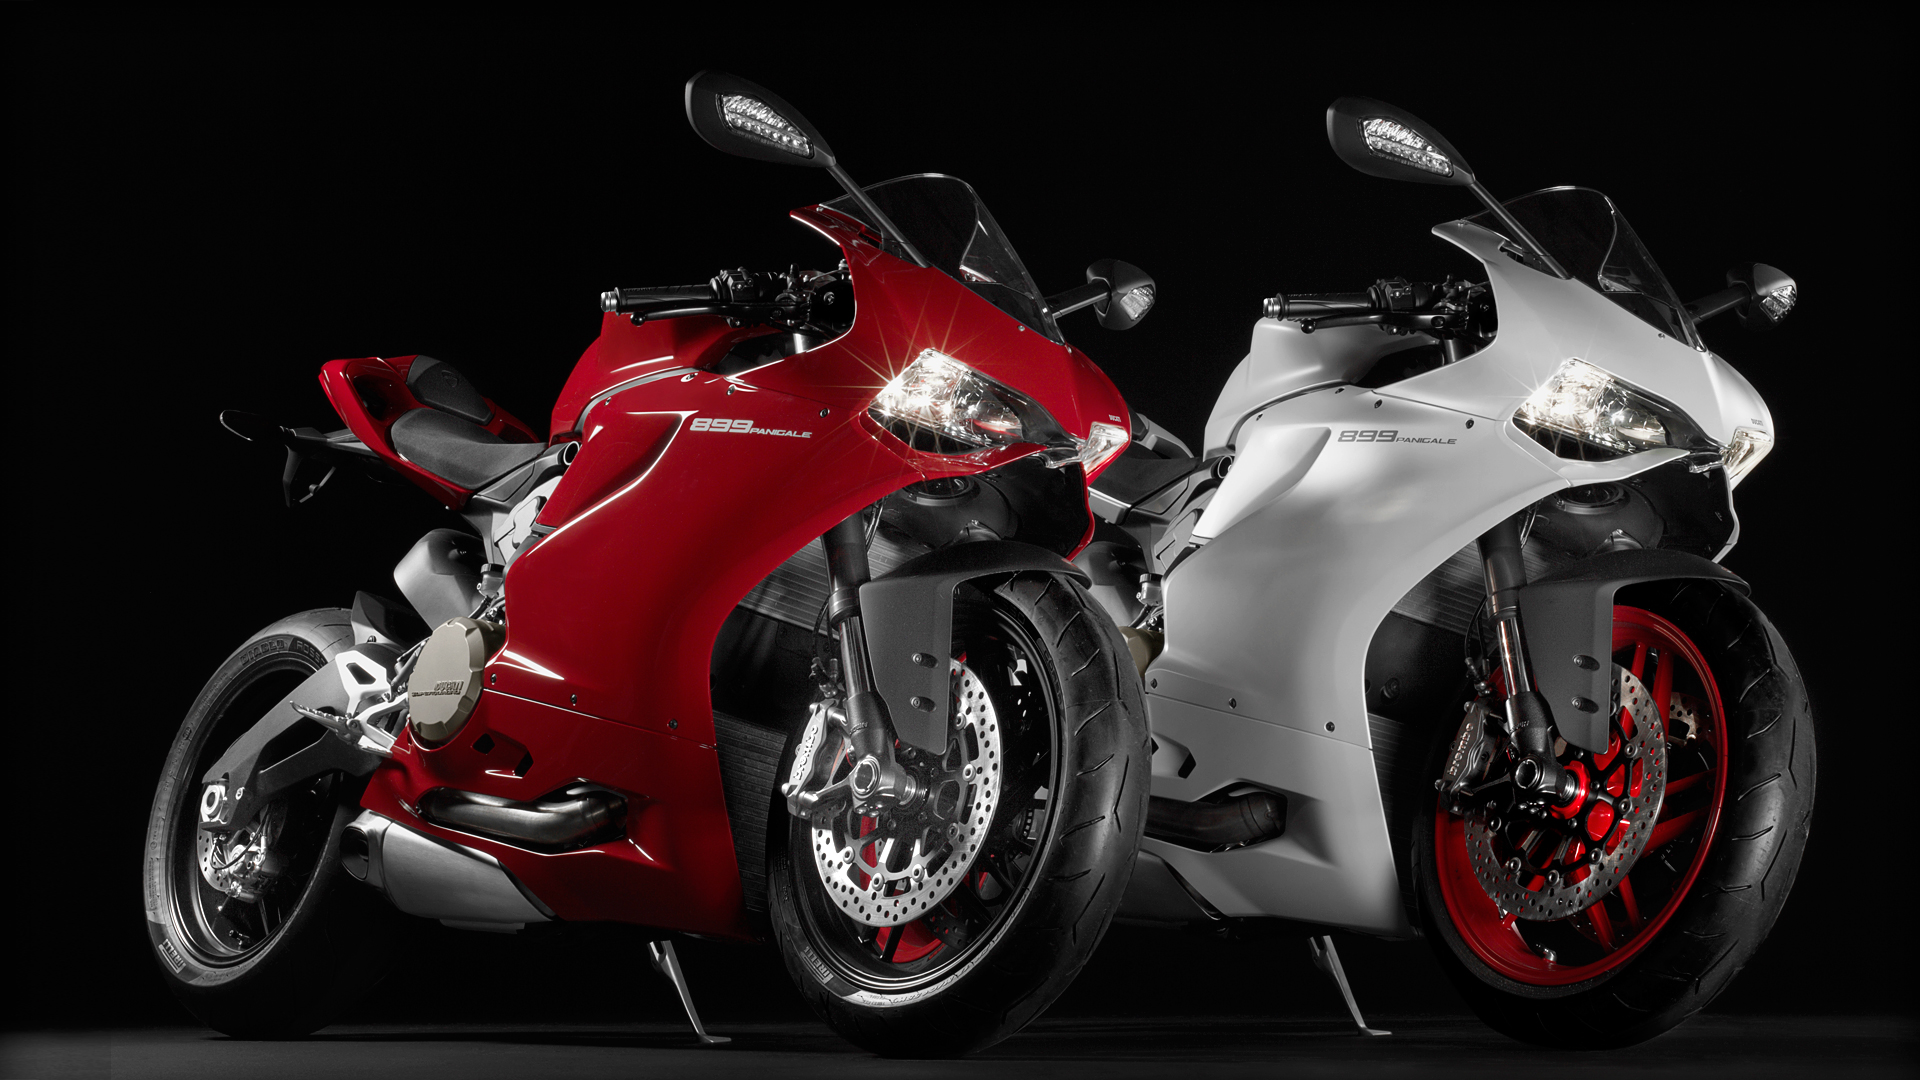 Ducati Panigale S For Sale Malaysia